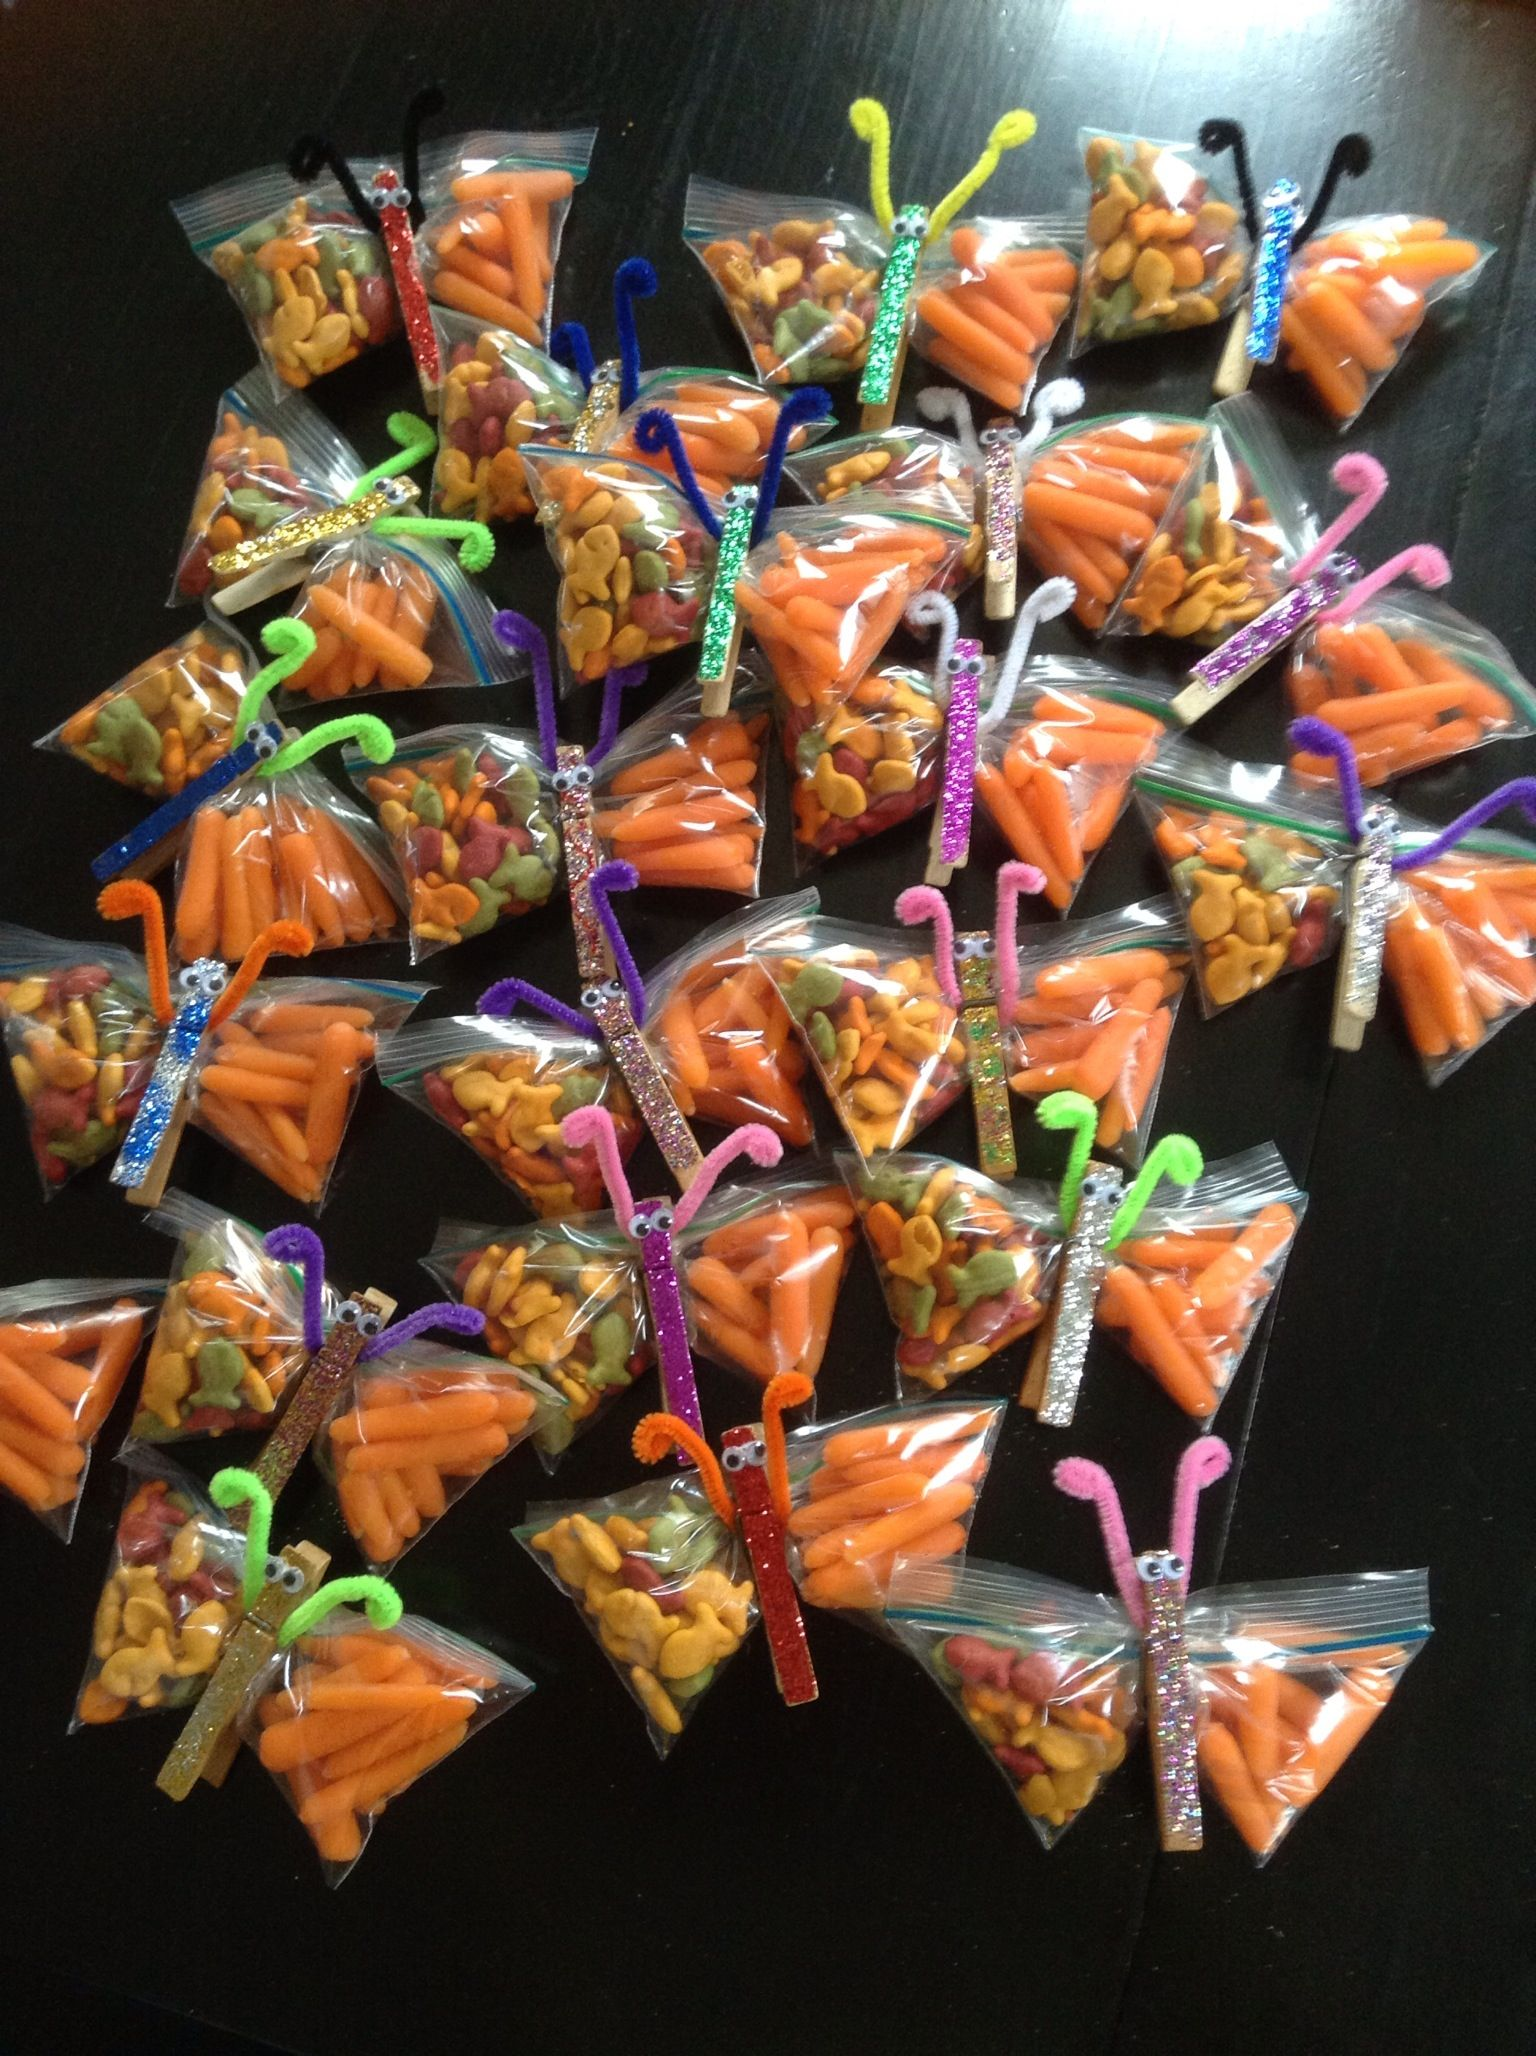 Healthy Peanut Free Spring Snack For Kids Classroom